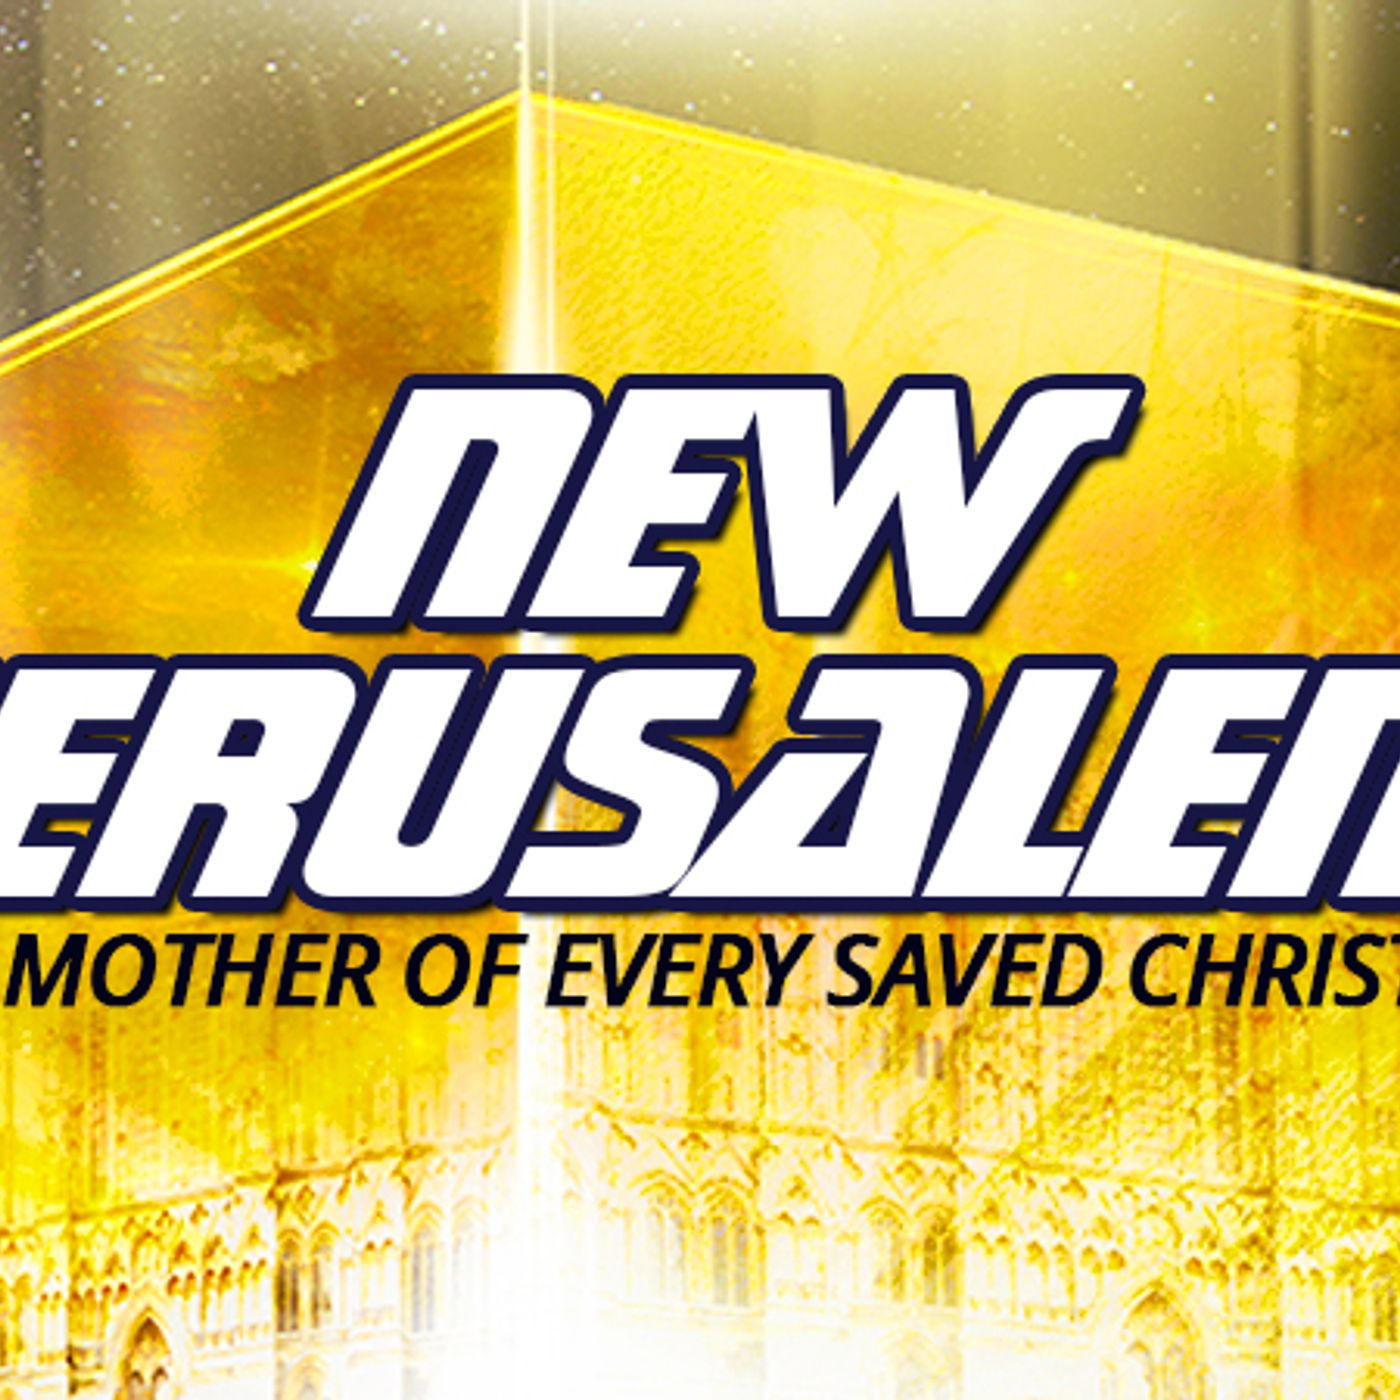 NTEB RADIO BIBLE STUDY: Christians Do Have A Mother But It's Not Mary, It's The 'New Jerusalem' Of Revelation 21 Built Of John 14 Mansions